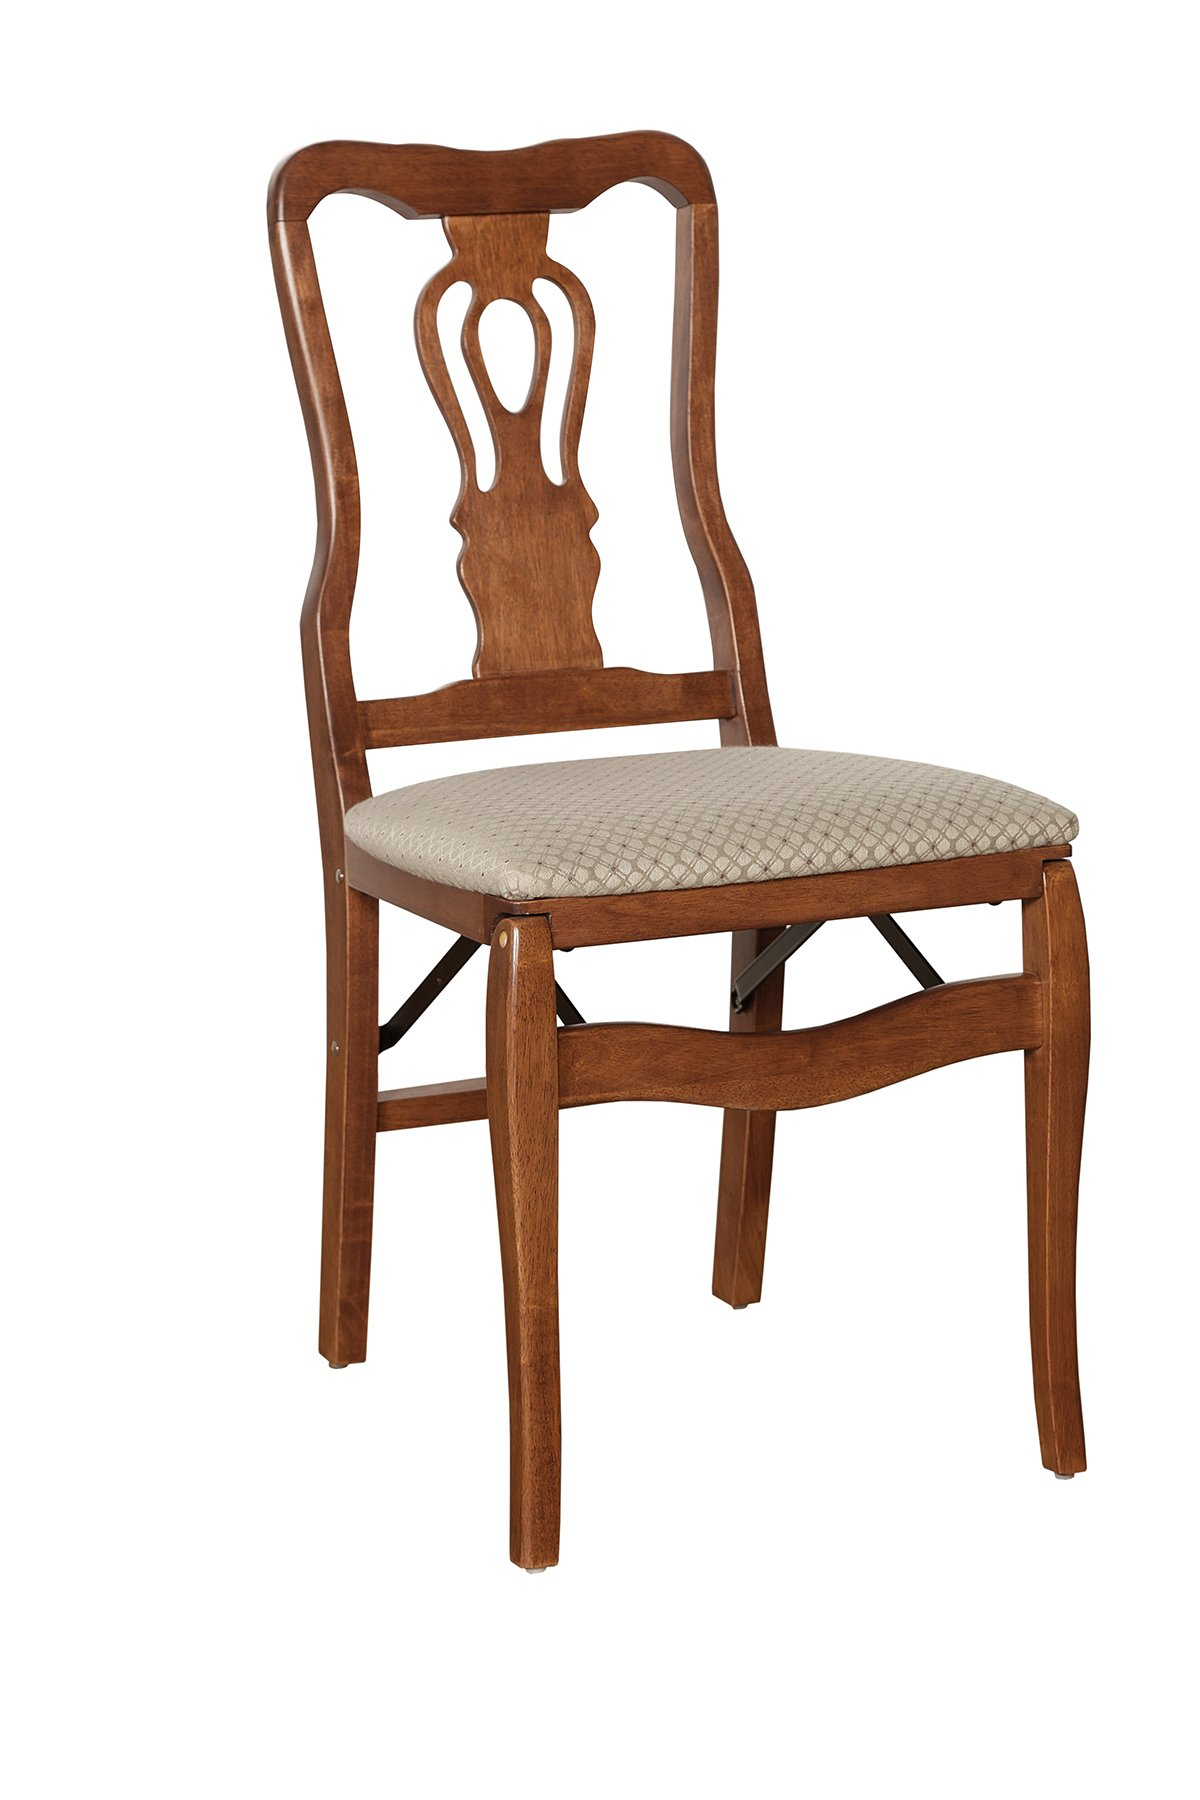 Stakmore Chippendale Folding Chair Finish, Set of 2, Cherry by MECO